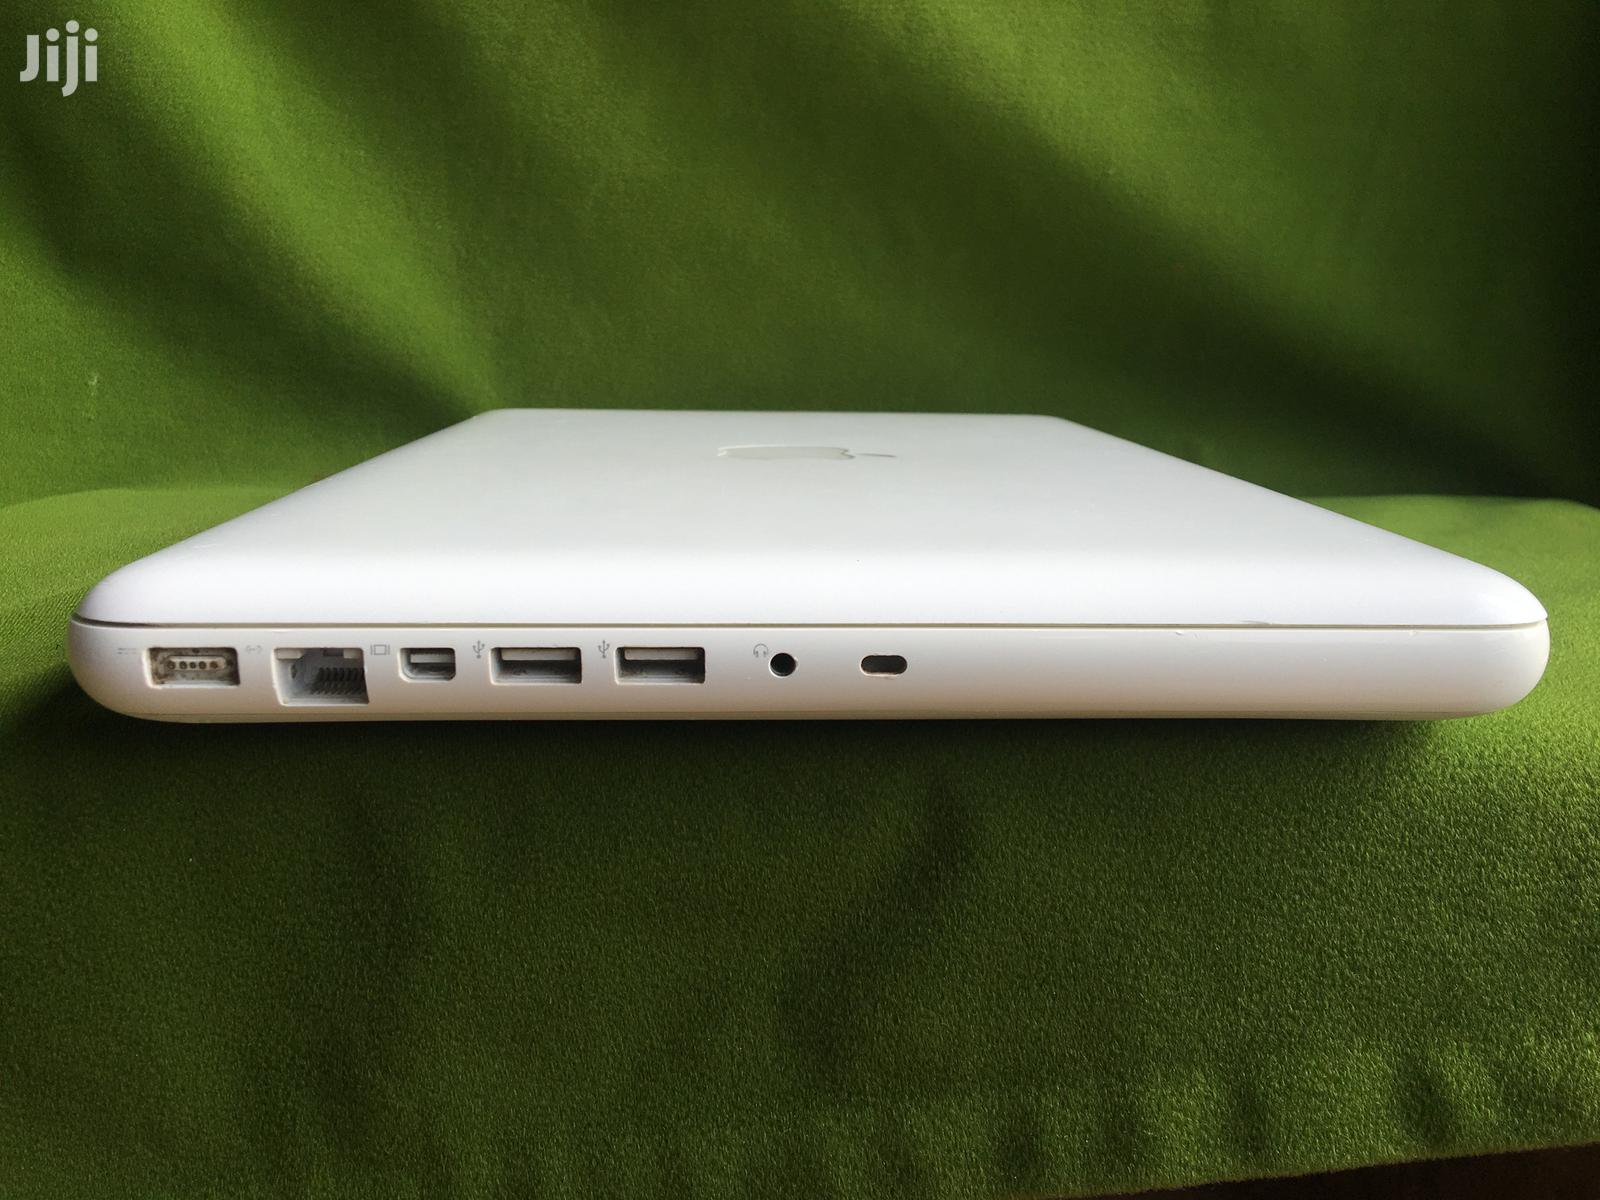 Laptop Apple MacBook 6GB Intel Core 2 Duo HDD 500GB | Laptops & Computers for sale in Achimota, Greater Accra, Ghana